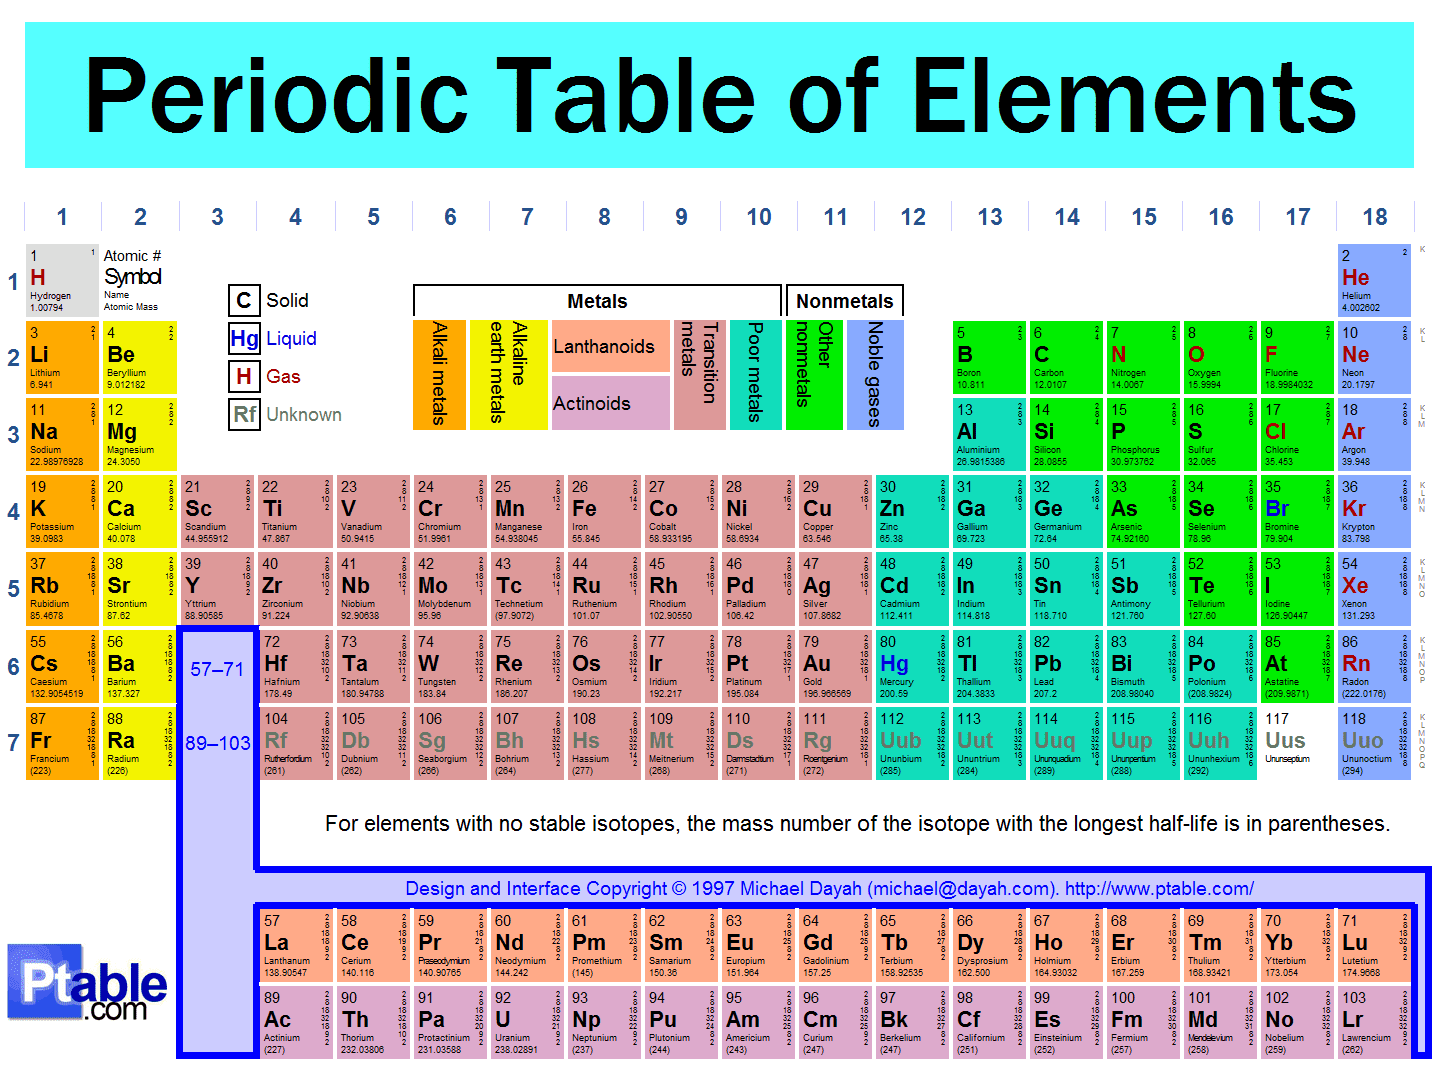 Radioactive Isotopes Periodic Table Elements Element's Periodic Table